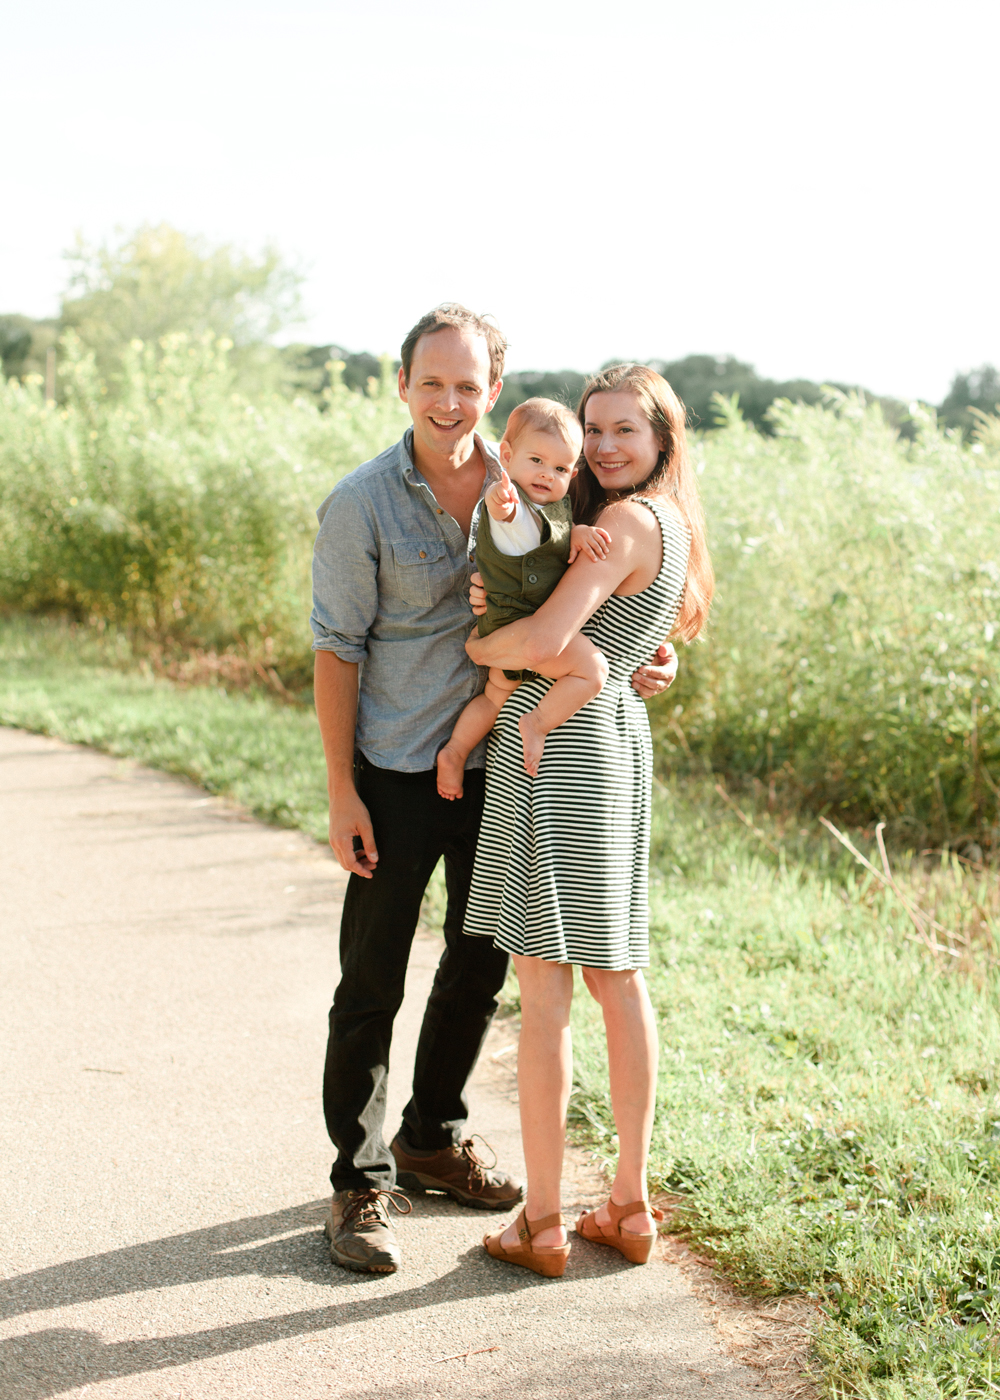 Outdoor Family Photography Minneapolis